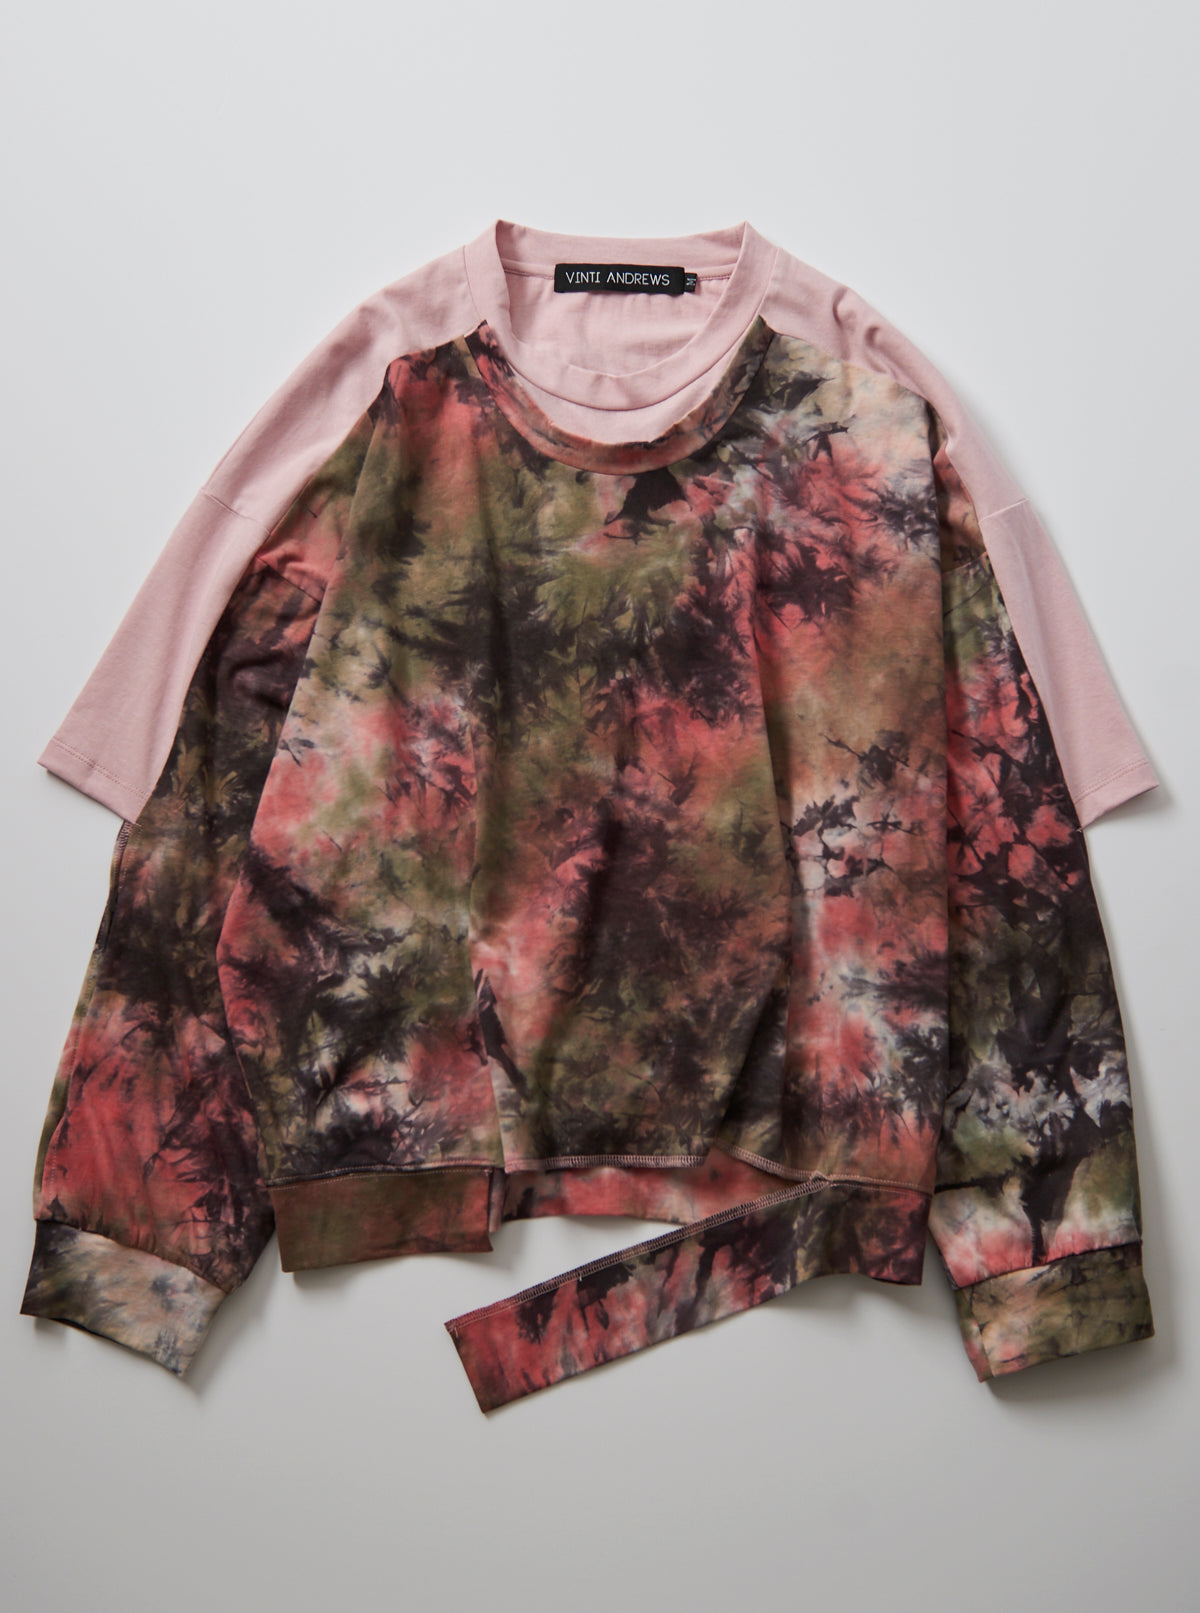 Vinti Andrews Tie Dye T Shirt Sweater